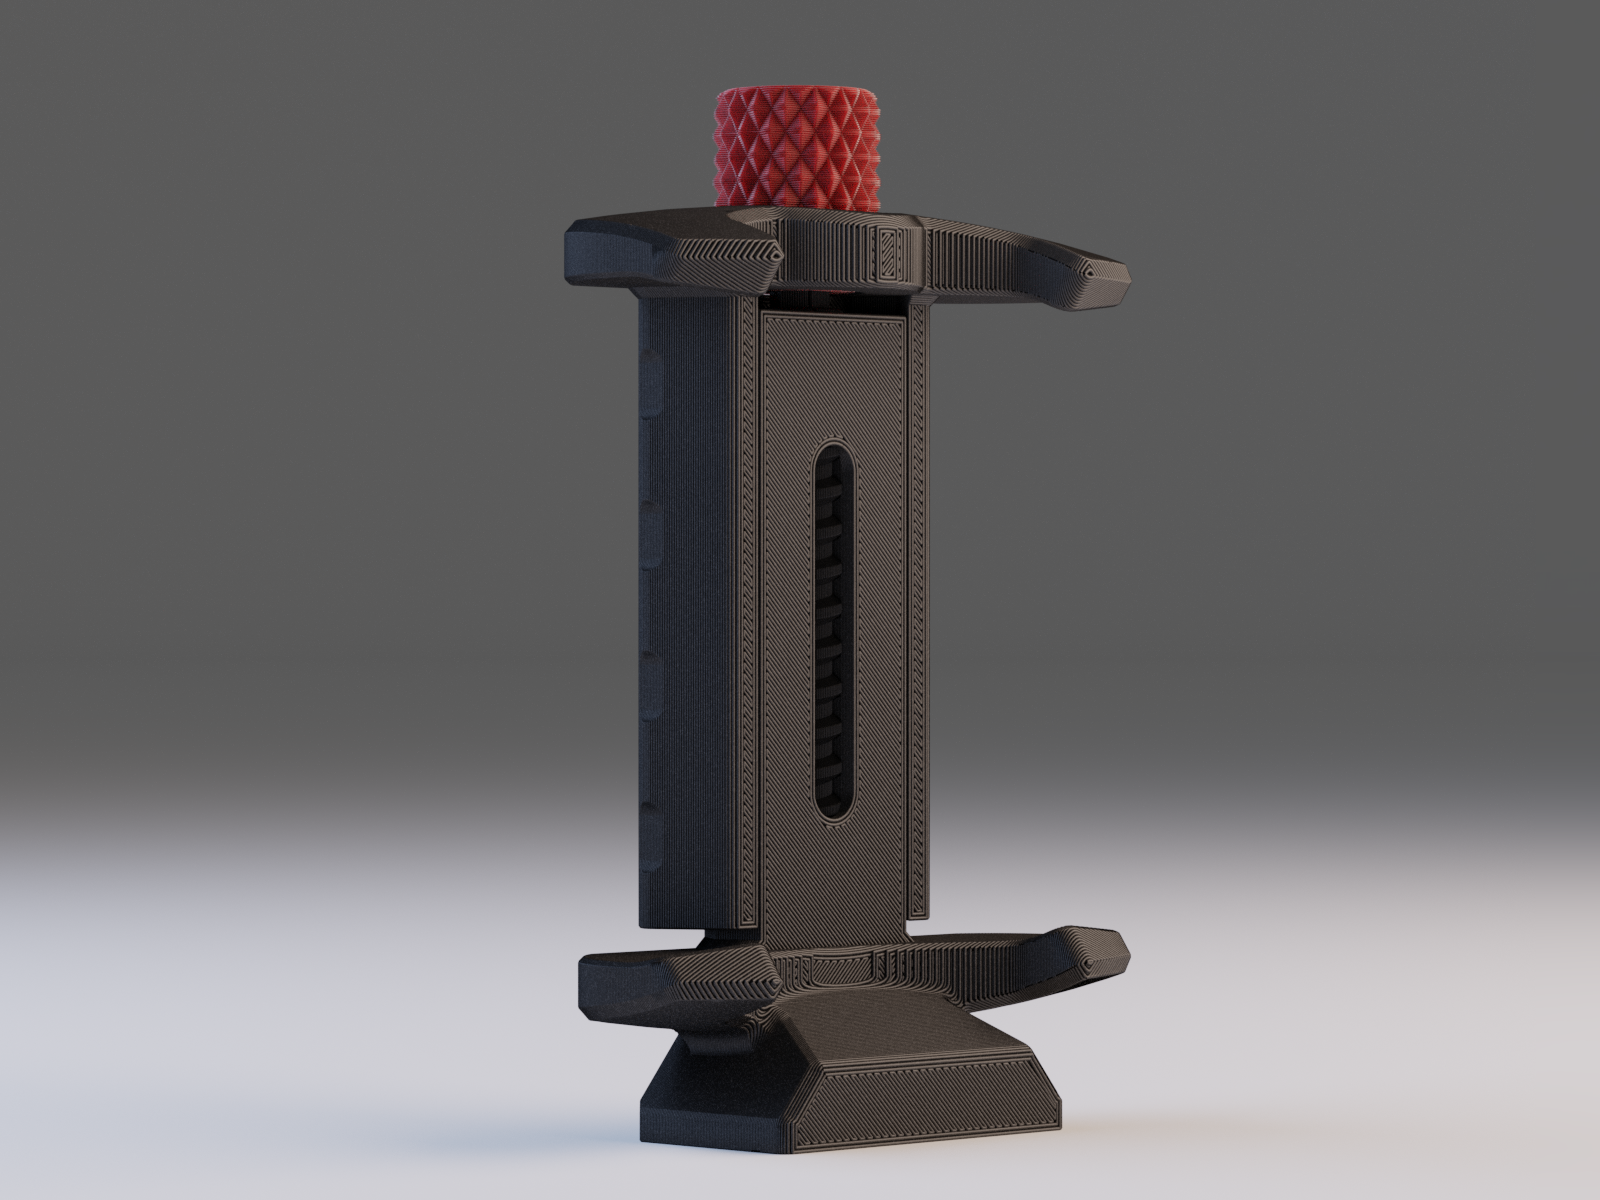 phone clamp1.png Download free STL file Tripod Mobile Phone Clamp V2 • Design to 3D print, Stamos